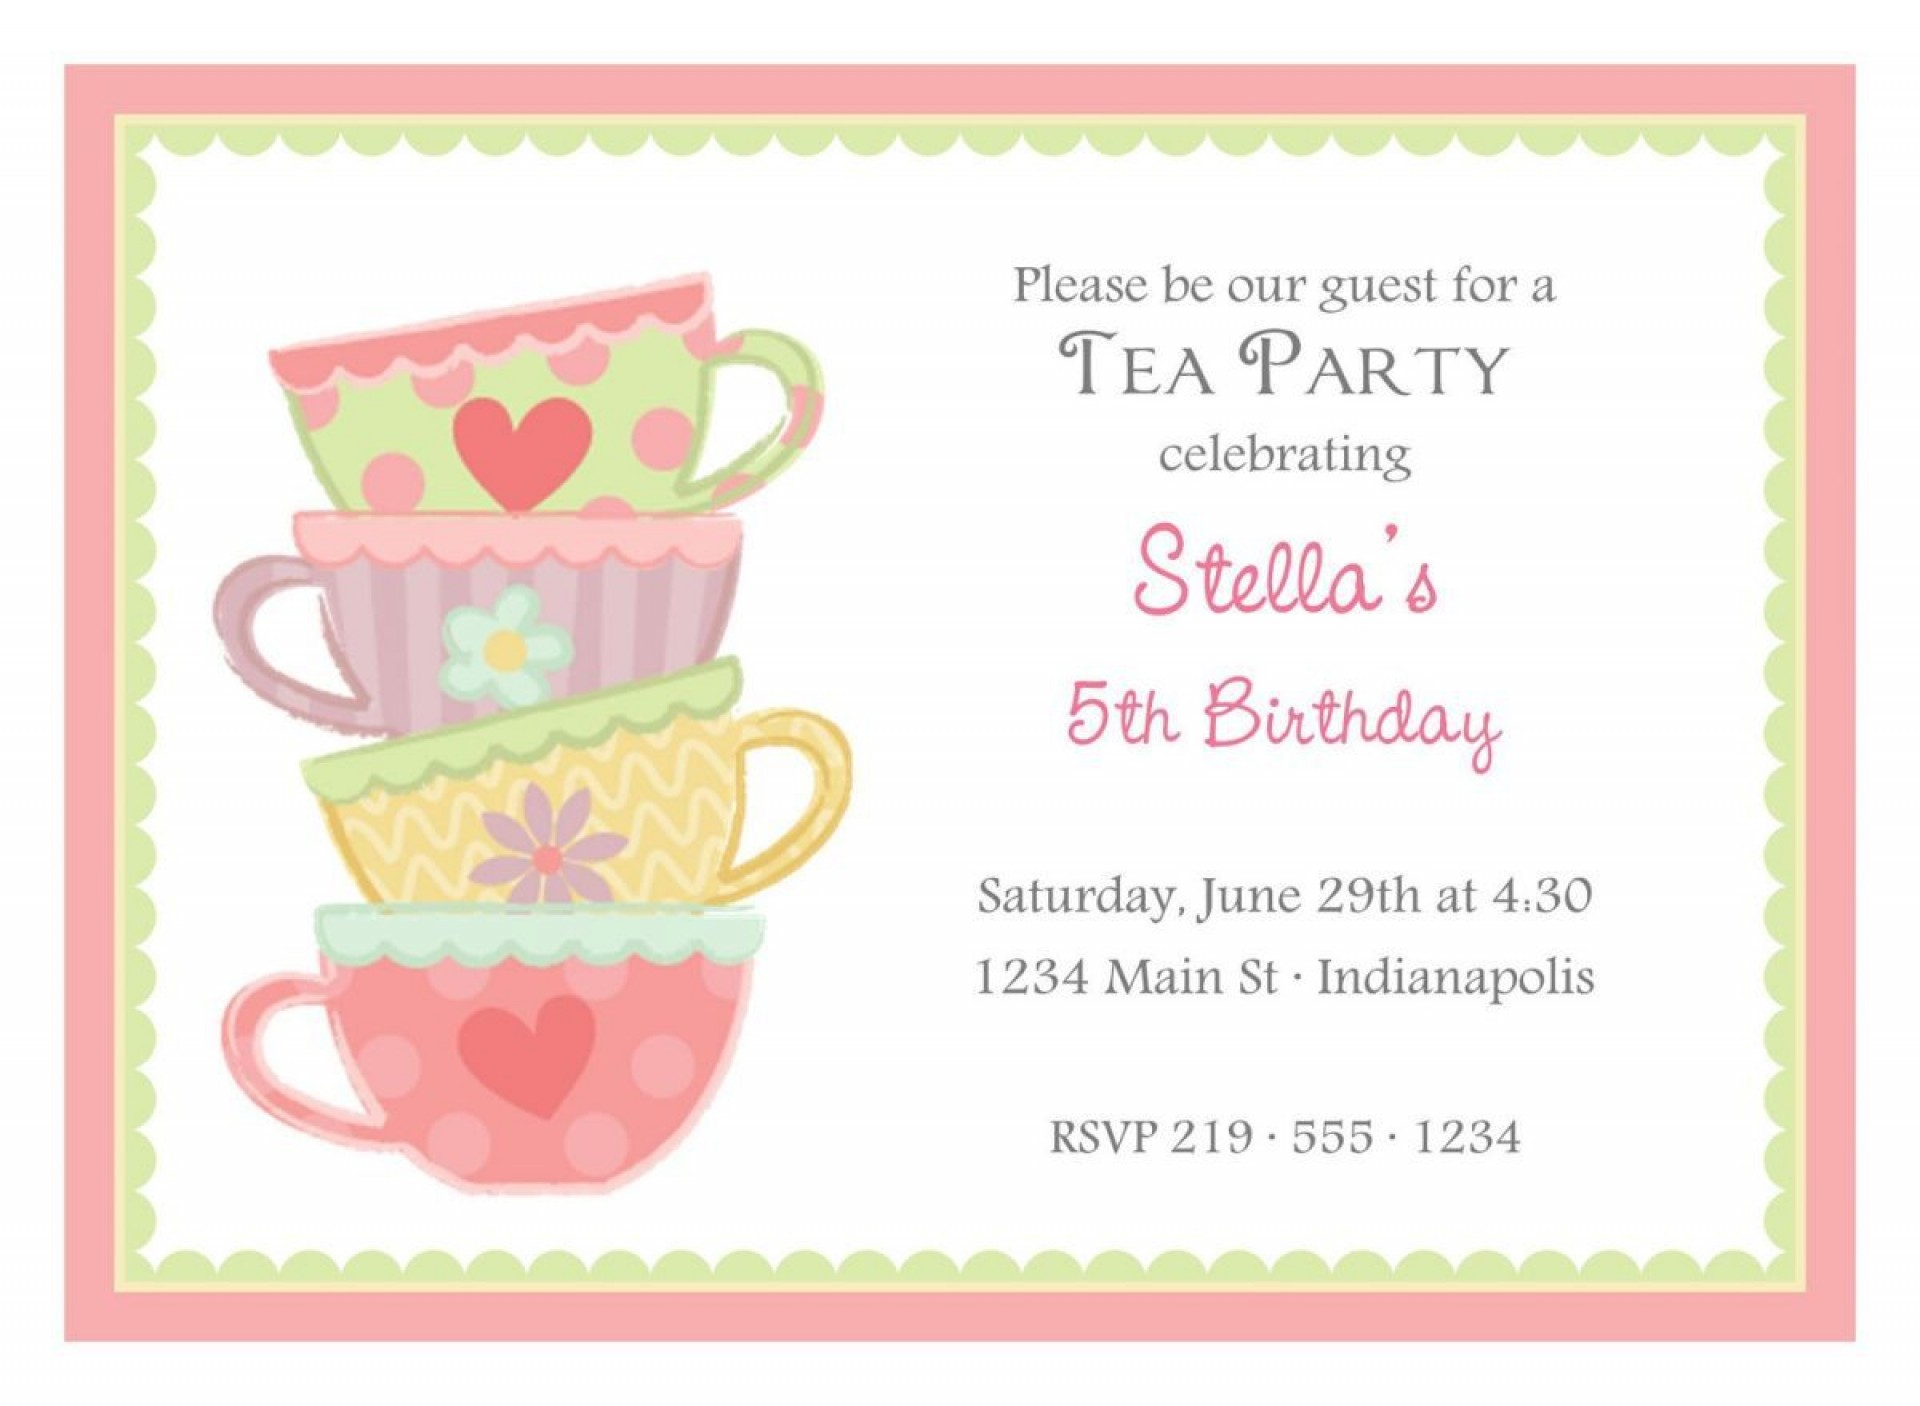 002 Dreaded Tea Party Invitation Template High Def  Templates Free Download Bridal Shower1920